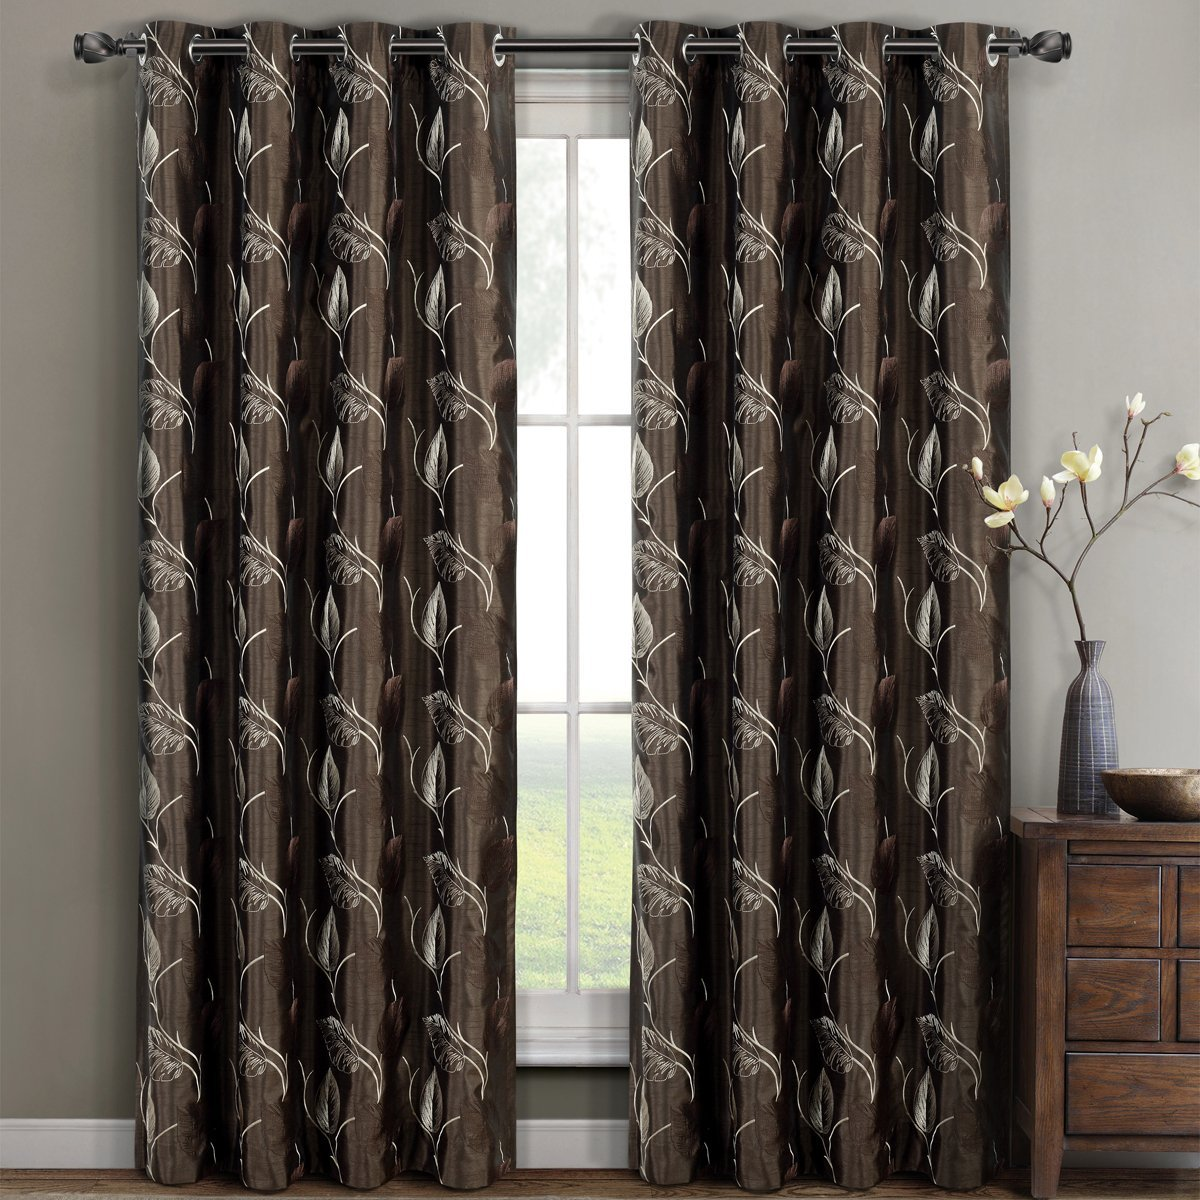 108 Inch Curtain Panels Cheap 108 Inch Curtain Panels Find 108 Inch Curtain Panels Deals